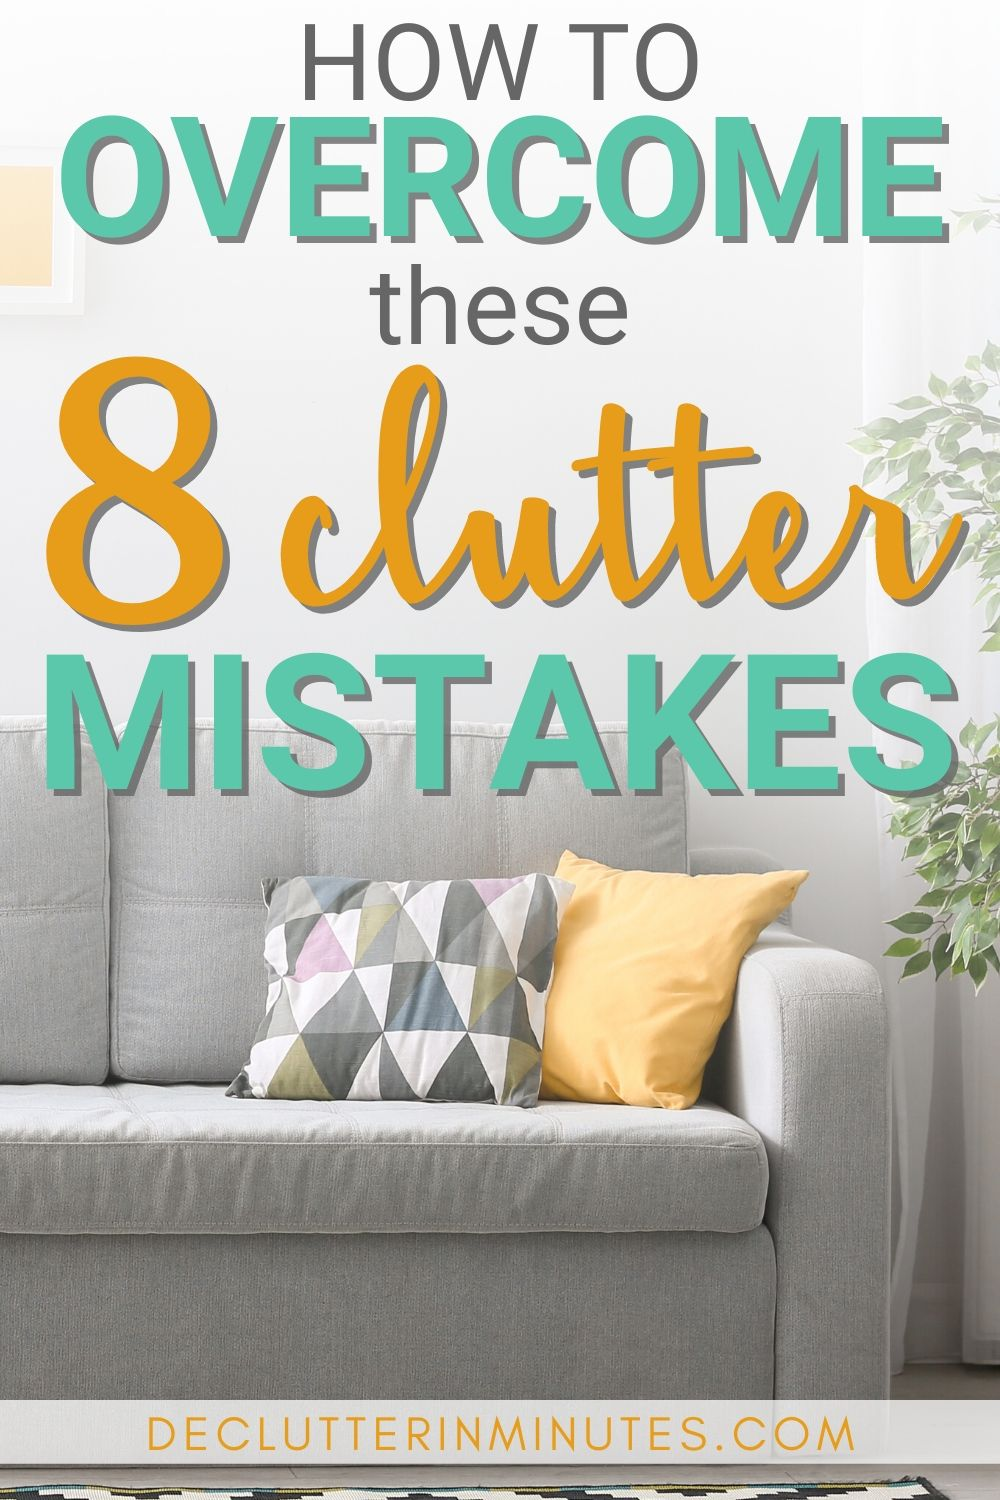 8 CLUTTER MISTAKES AND HOW TO AVOID THEM